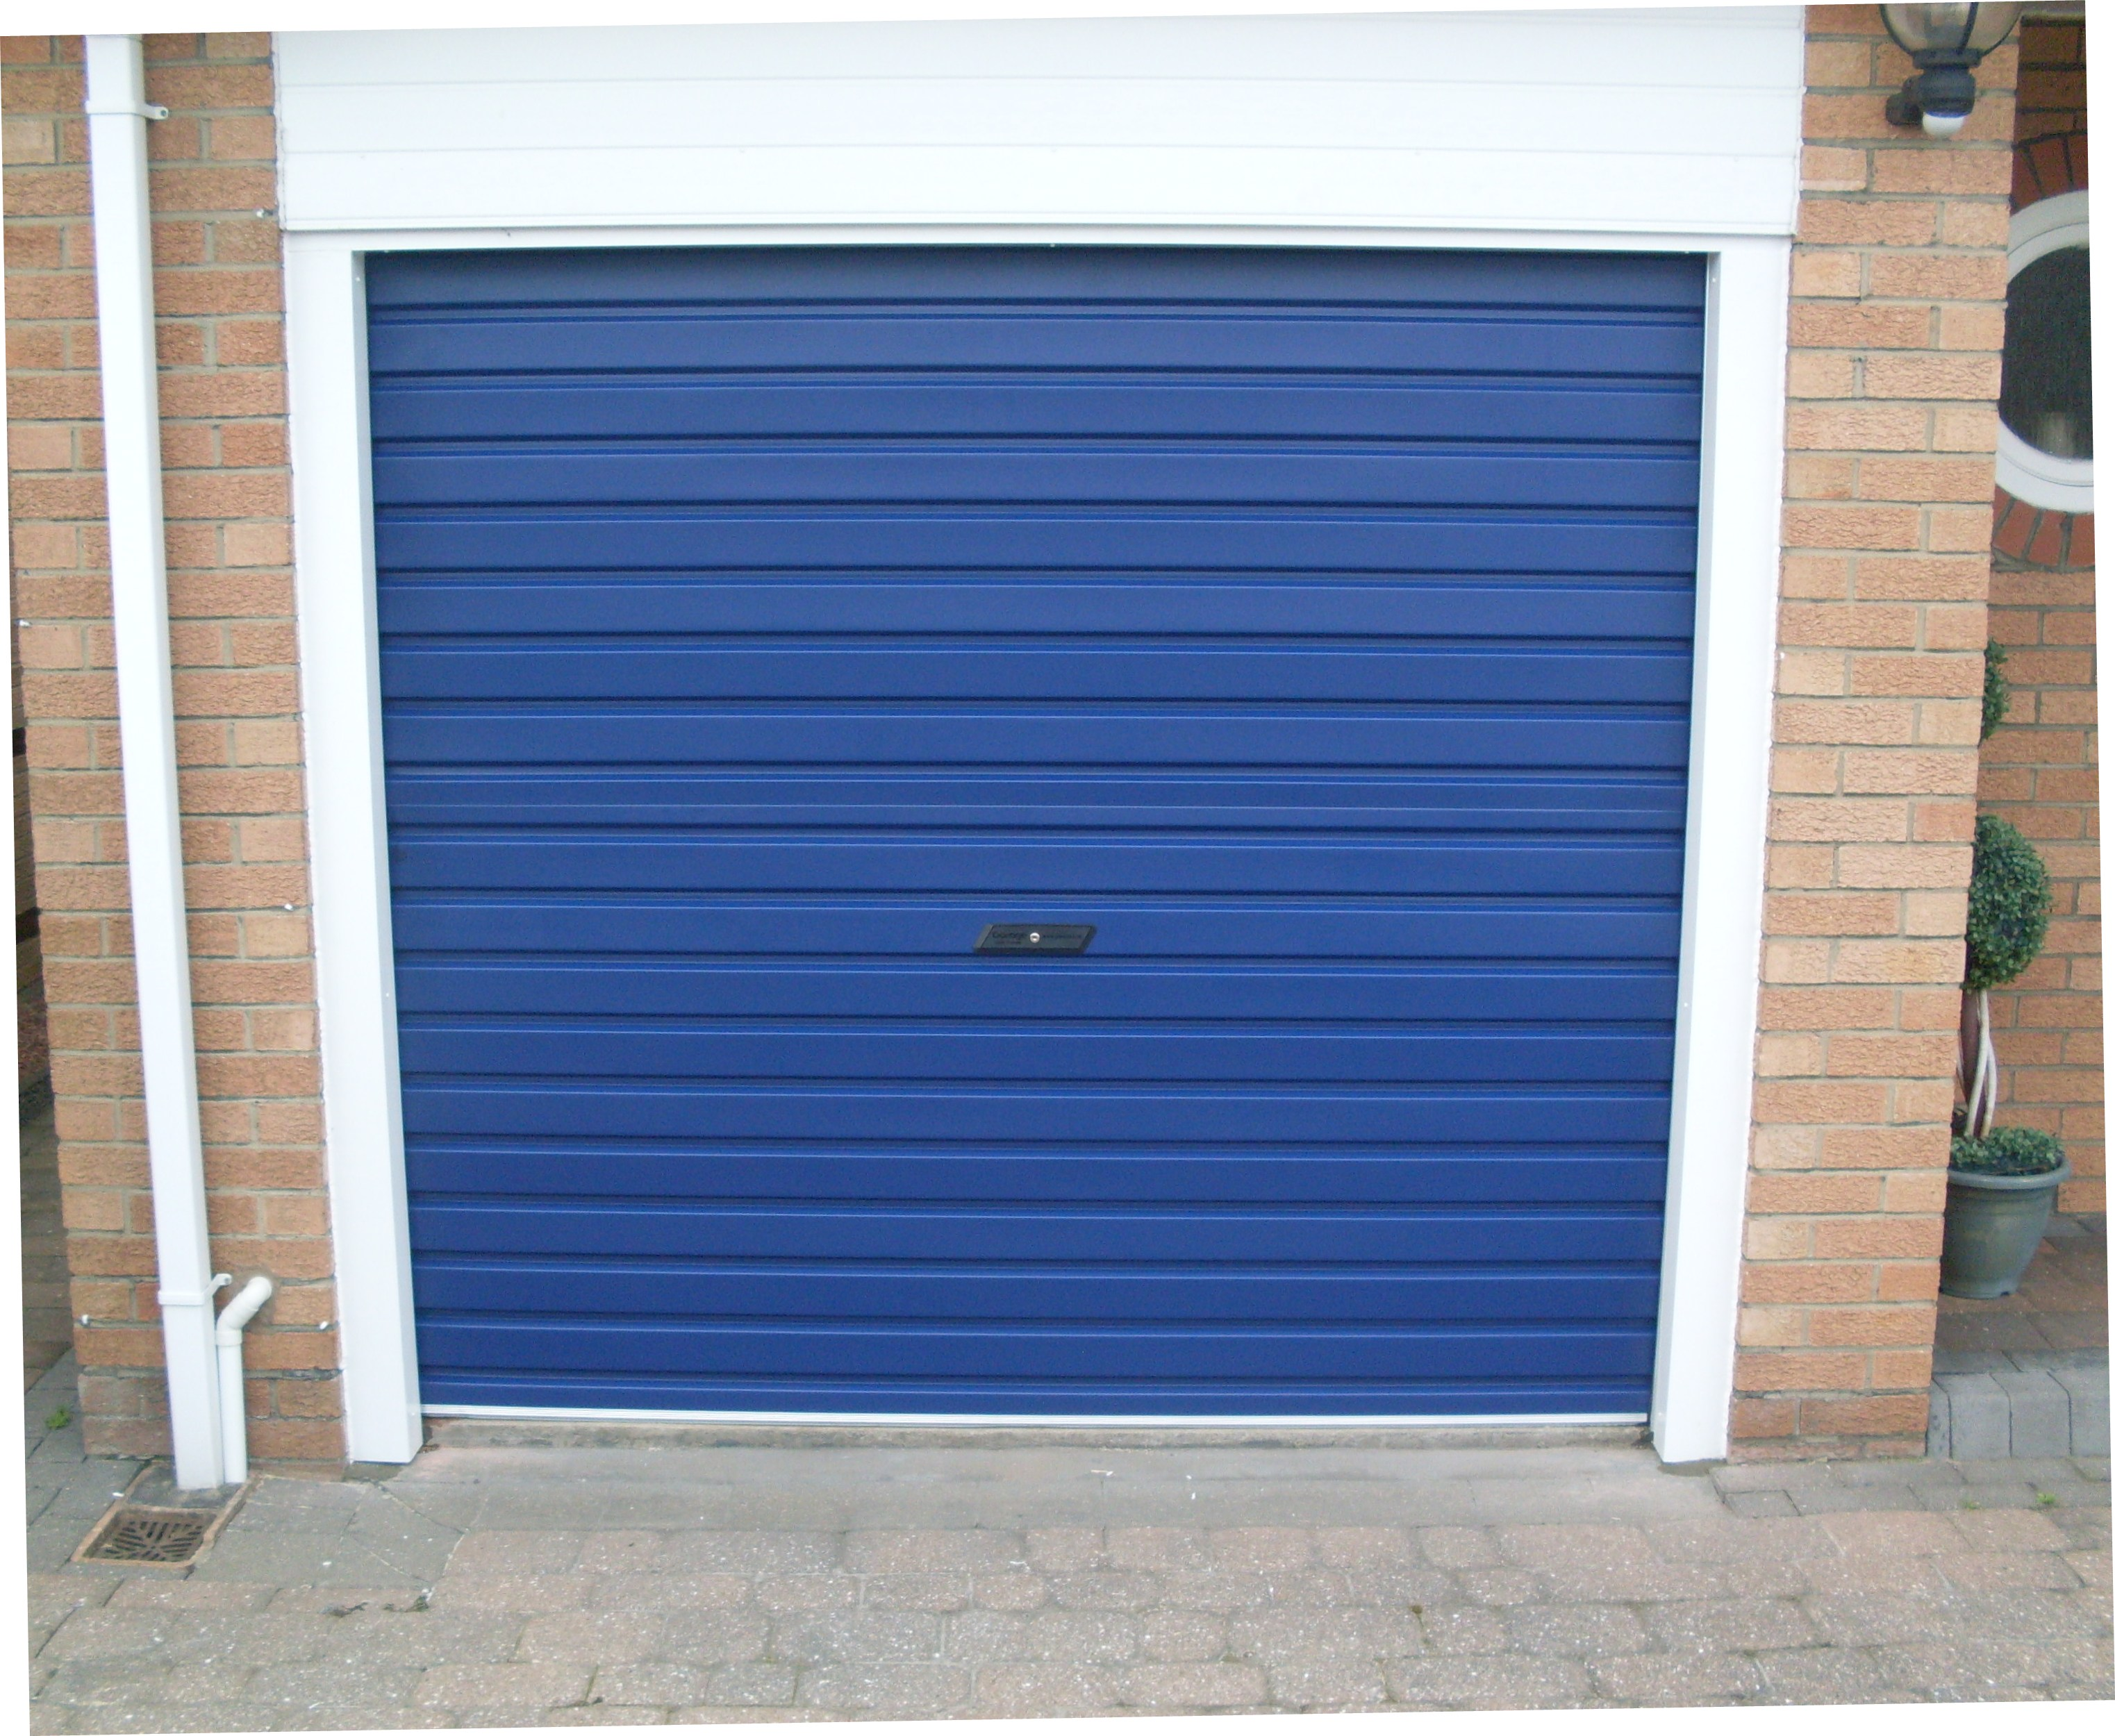 Garage Door Repair Corona Ca Garage Door Repair Corona Ca